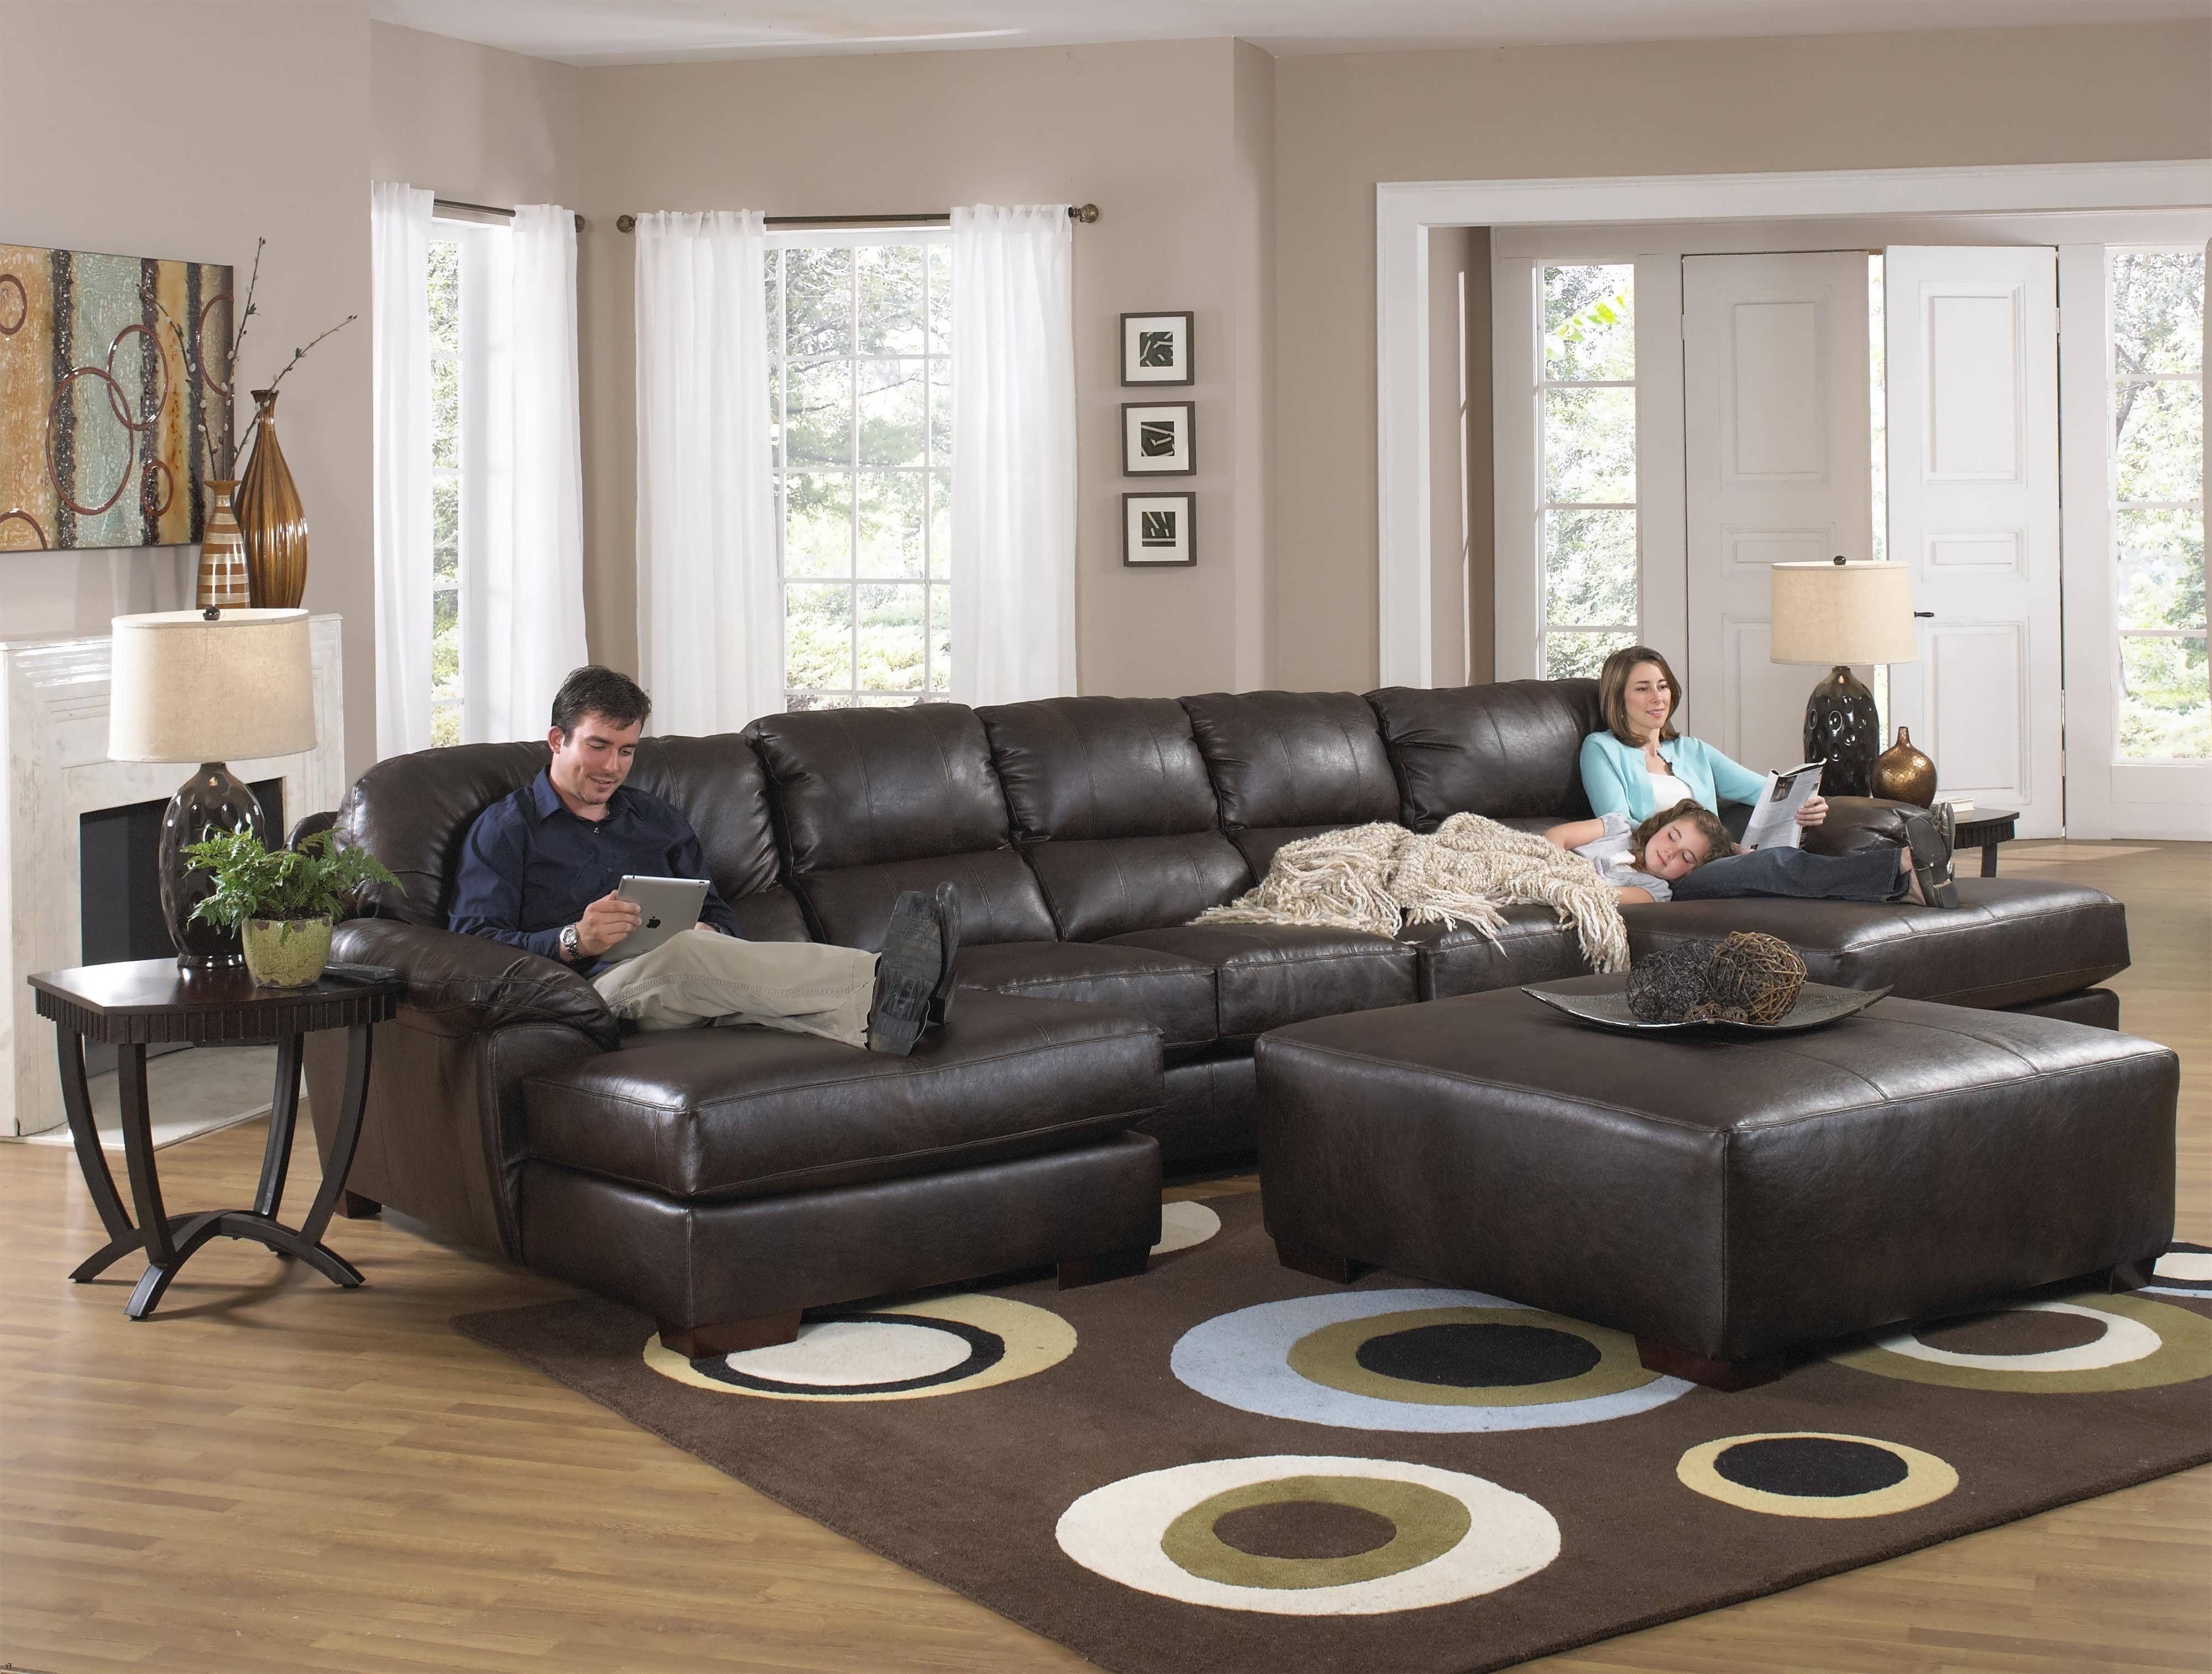 Latest Sofas : Grey Chaise Lounge Gray Chaise Lounge Gray Sectional Sofa Pertaining To Leather Couches With Chaise Lounge (View 14 of 15)